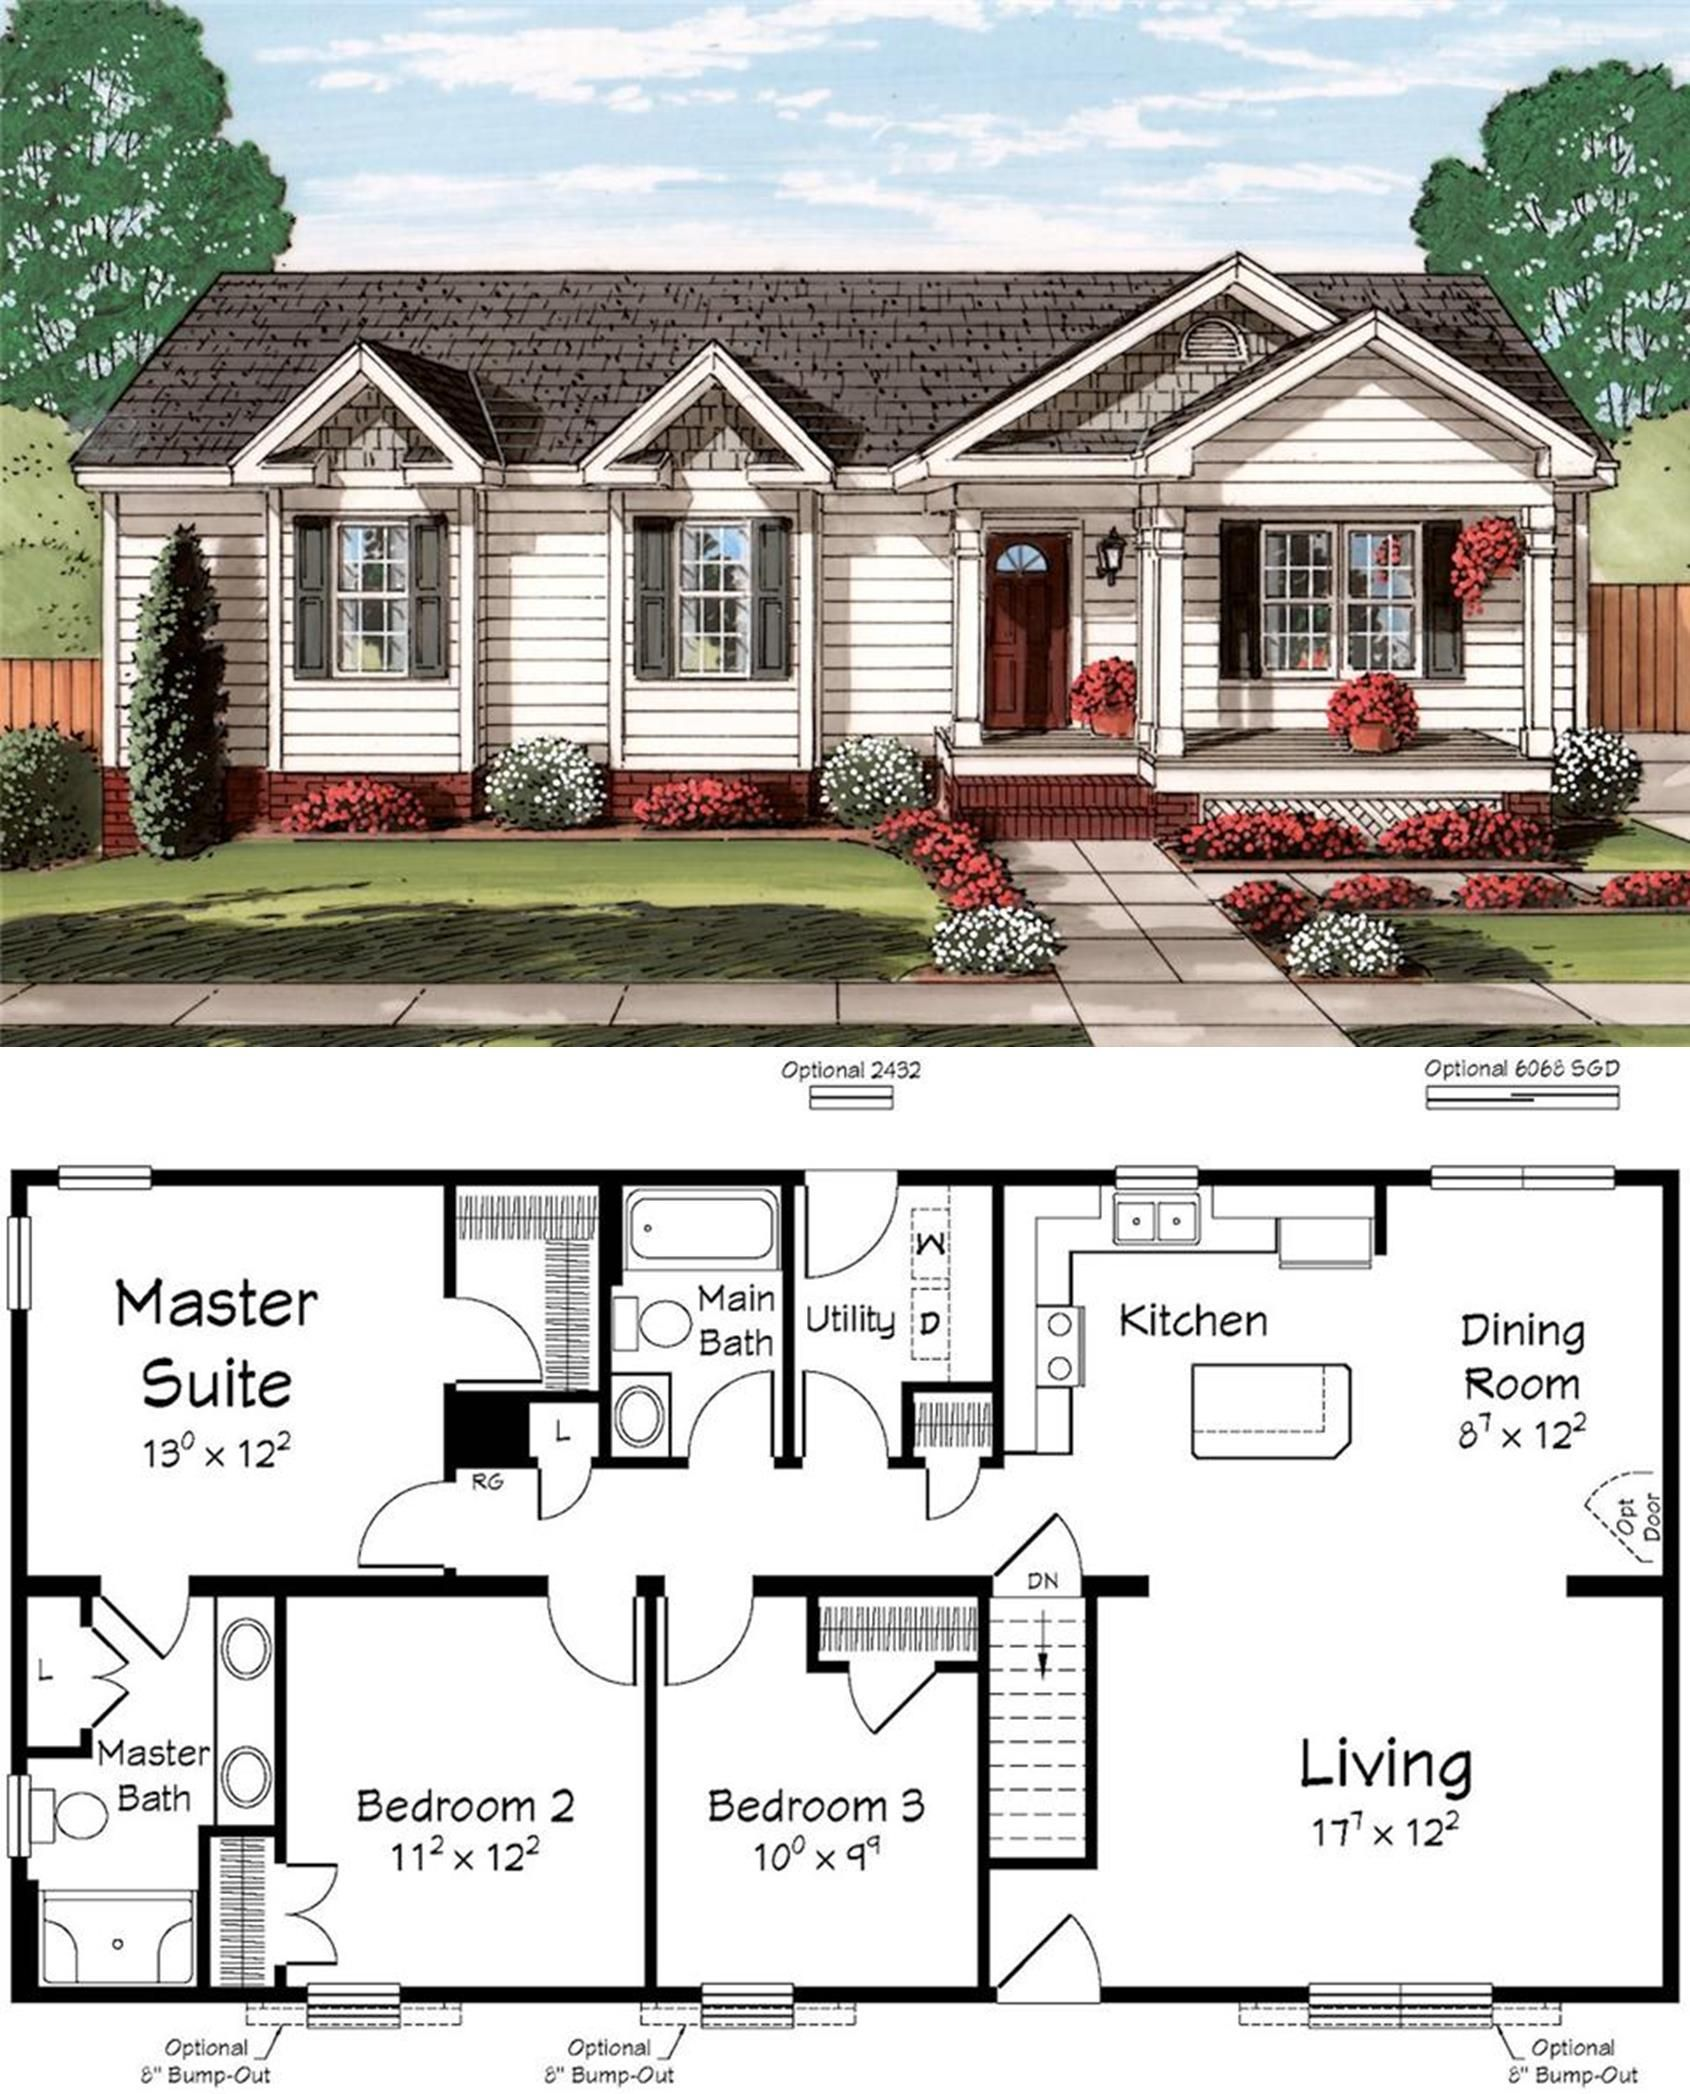 Pin By Randy Perkins On Floor Plans Sims House Plans Dream House Plans New House Plans